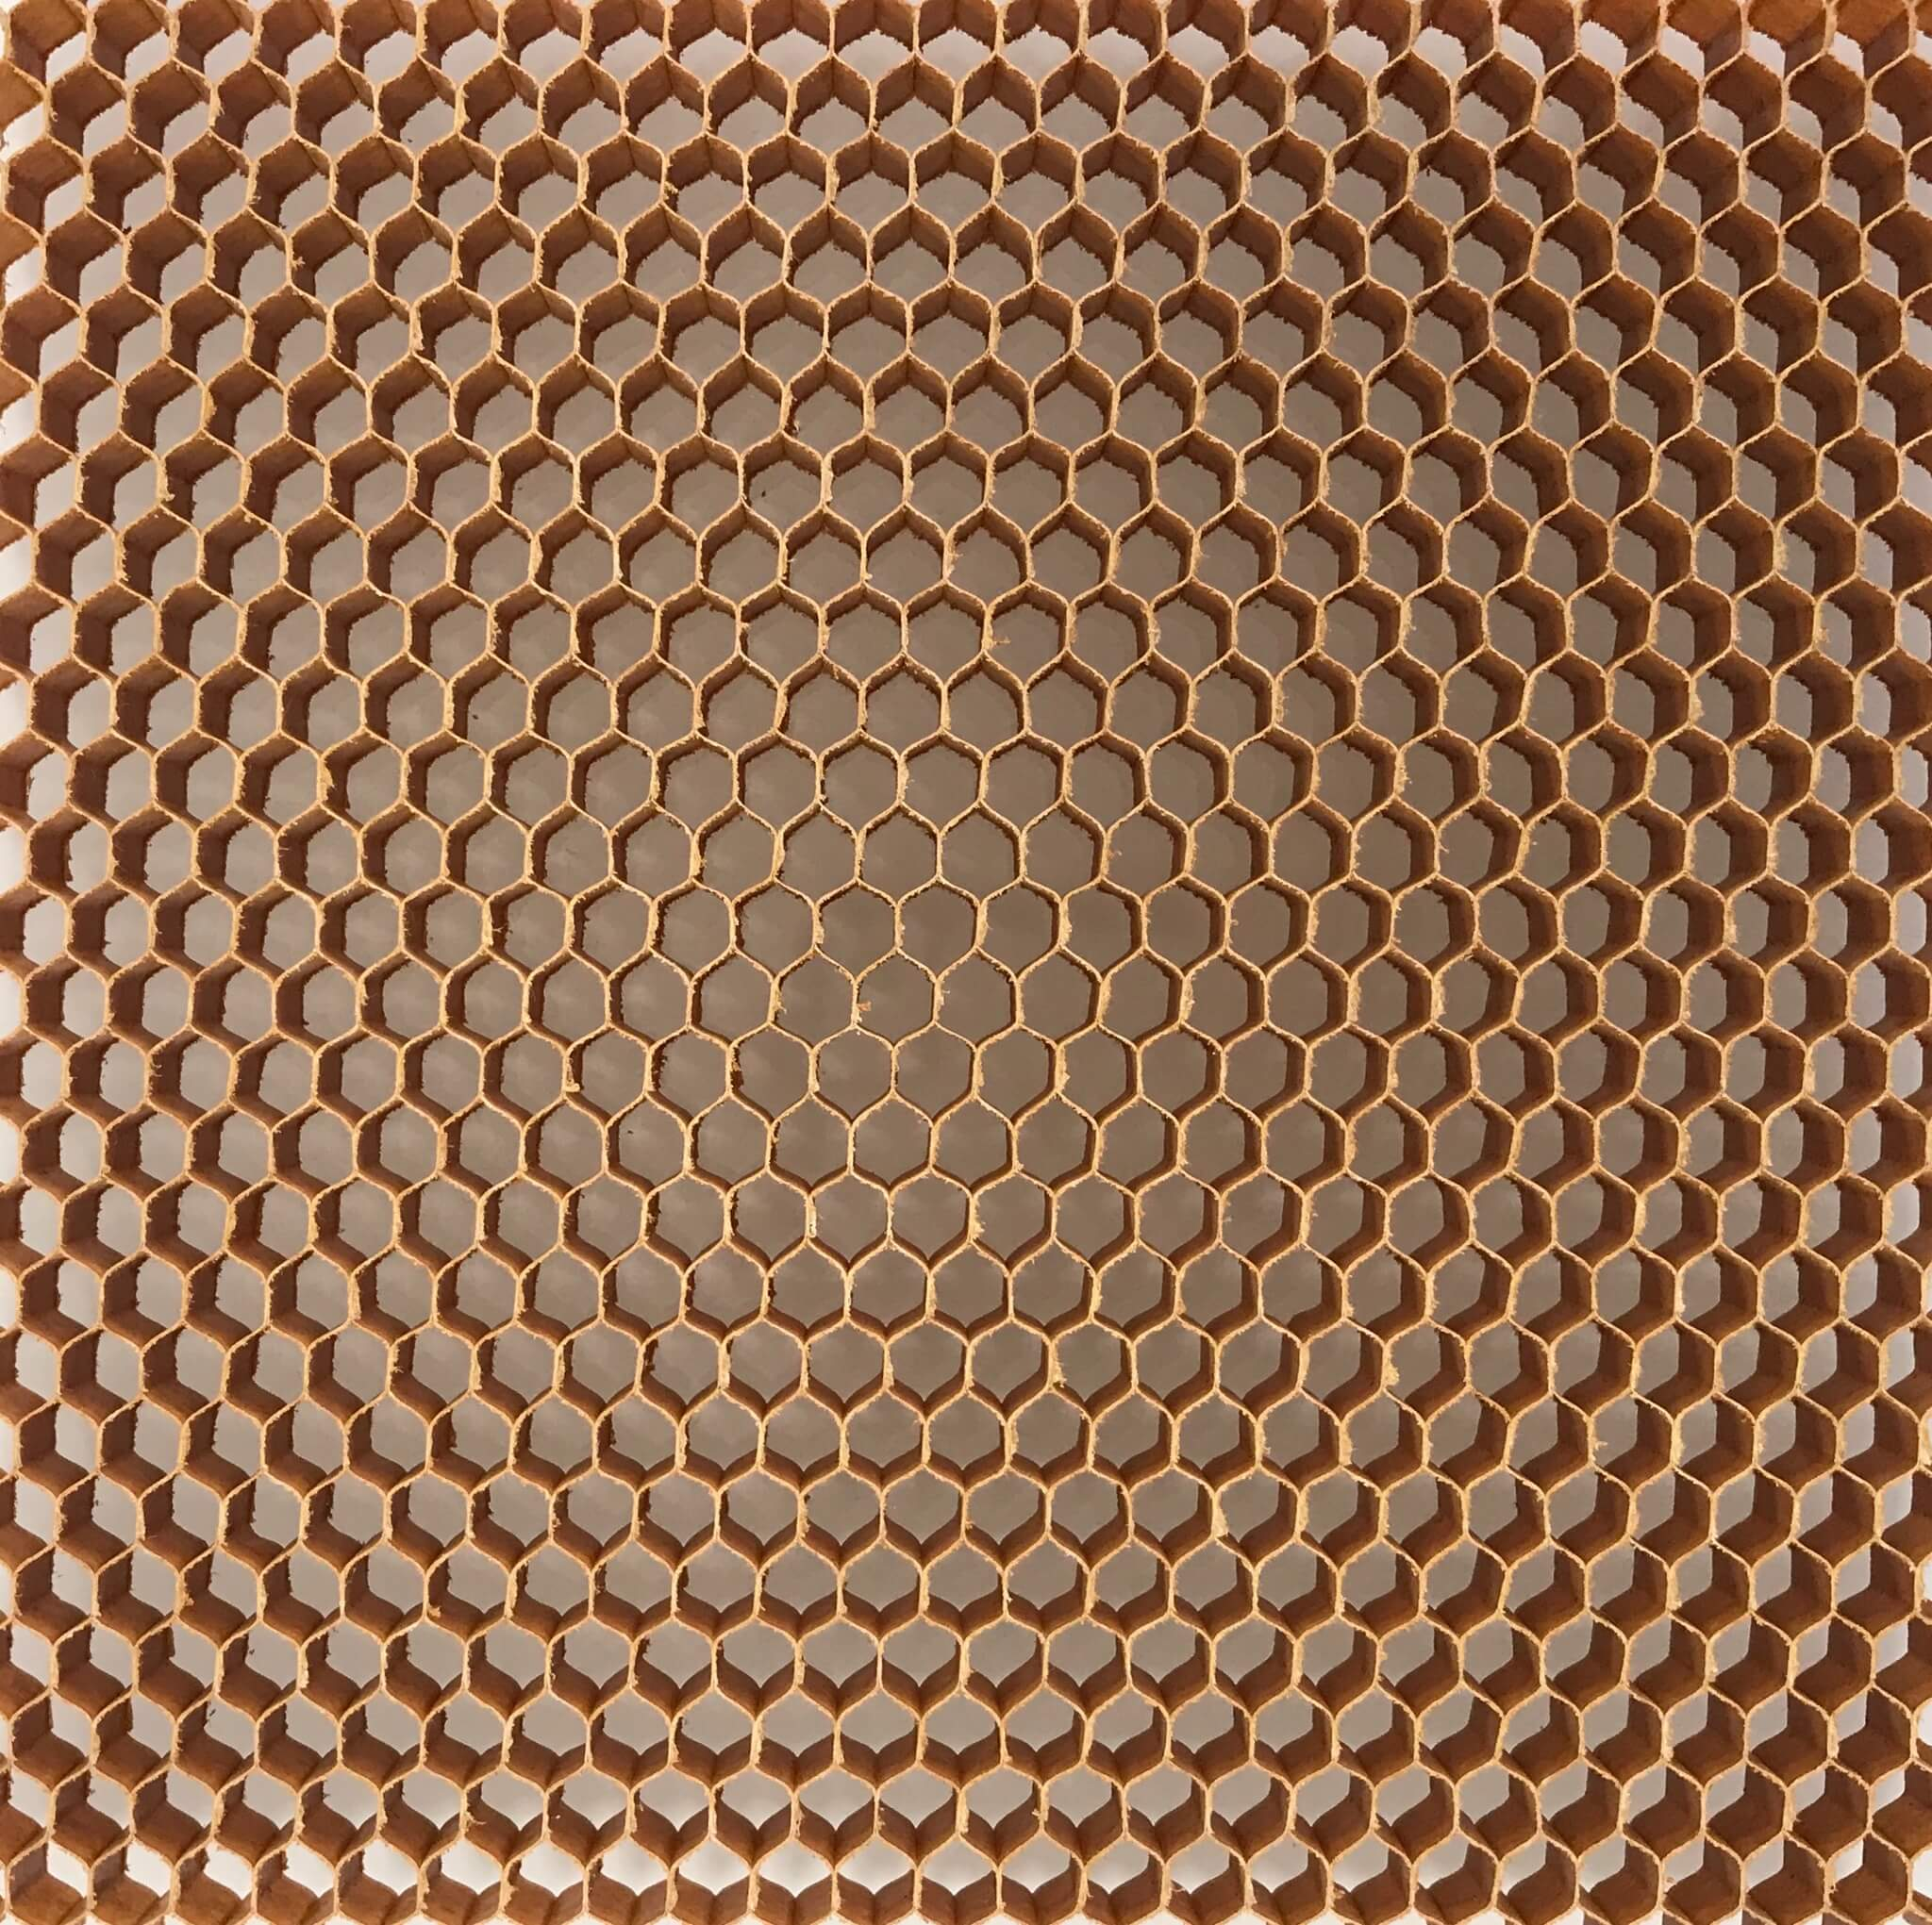 Nomex® and Kevlar® paper honeycomb